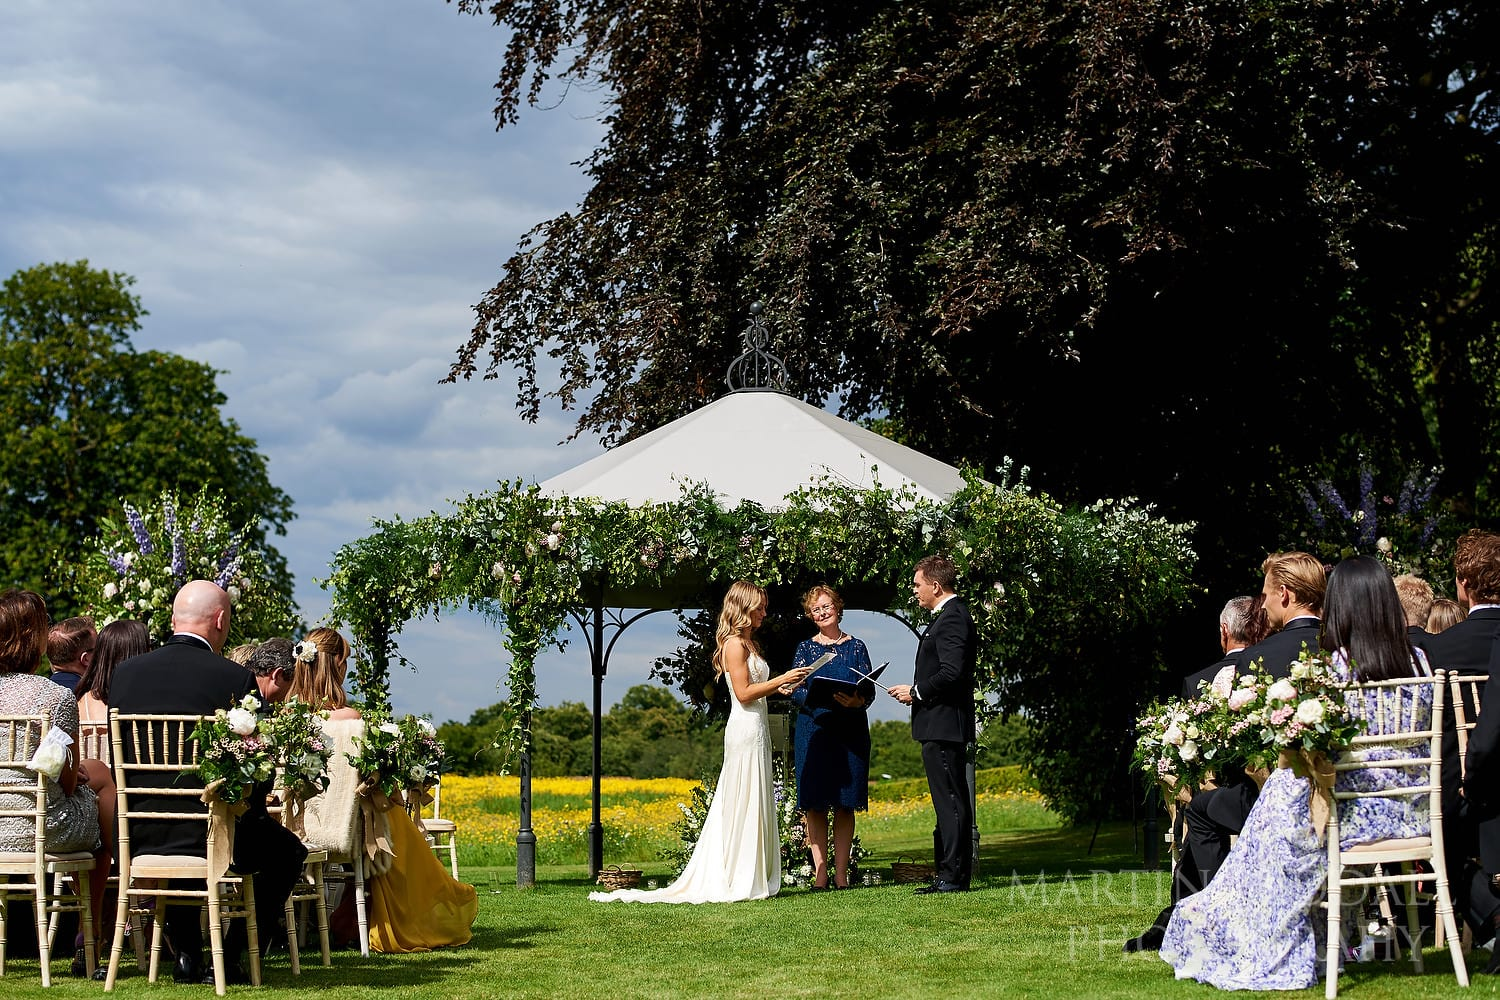 Coworth Park wedding ceremony in the meadow